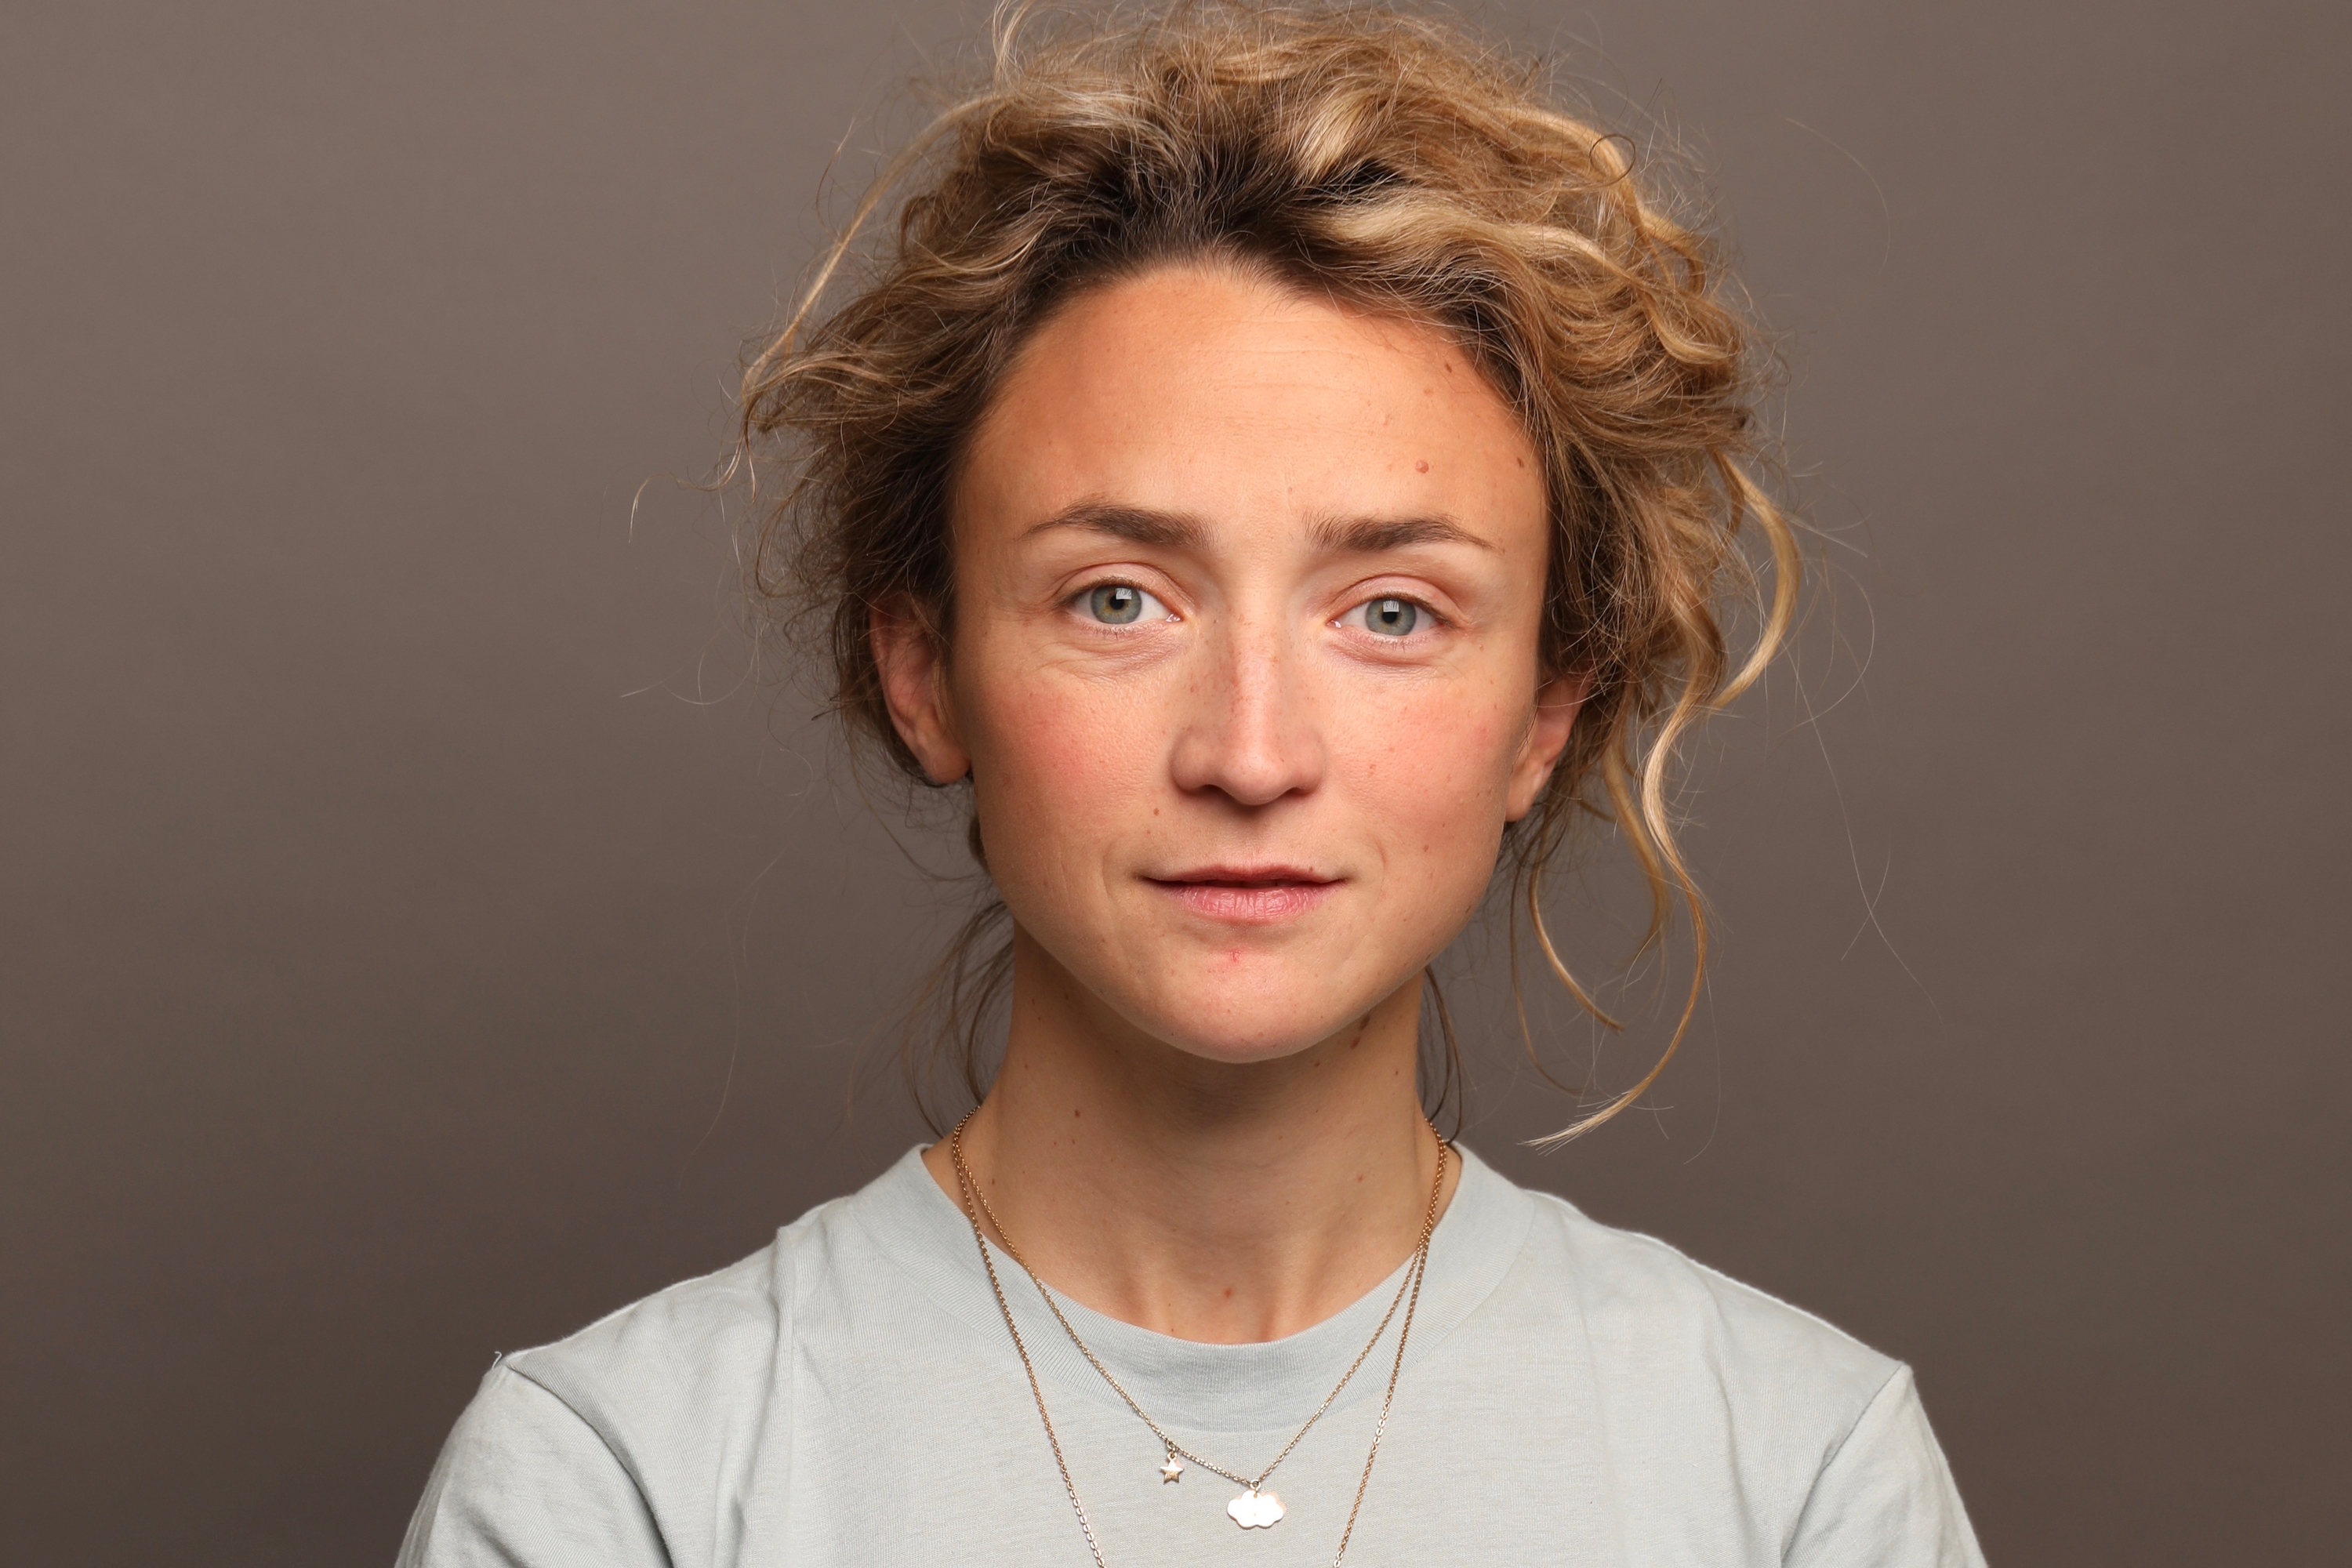 Camus-Tournier joins Ogilvy Paris, StrawberryFrog hires four